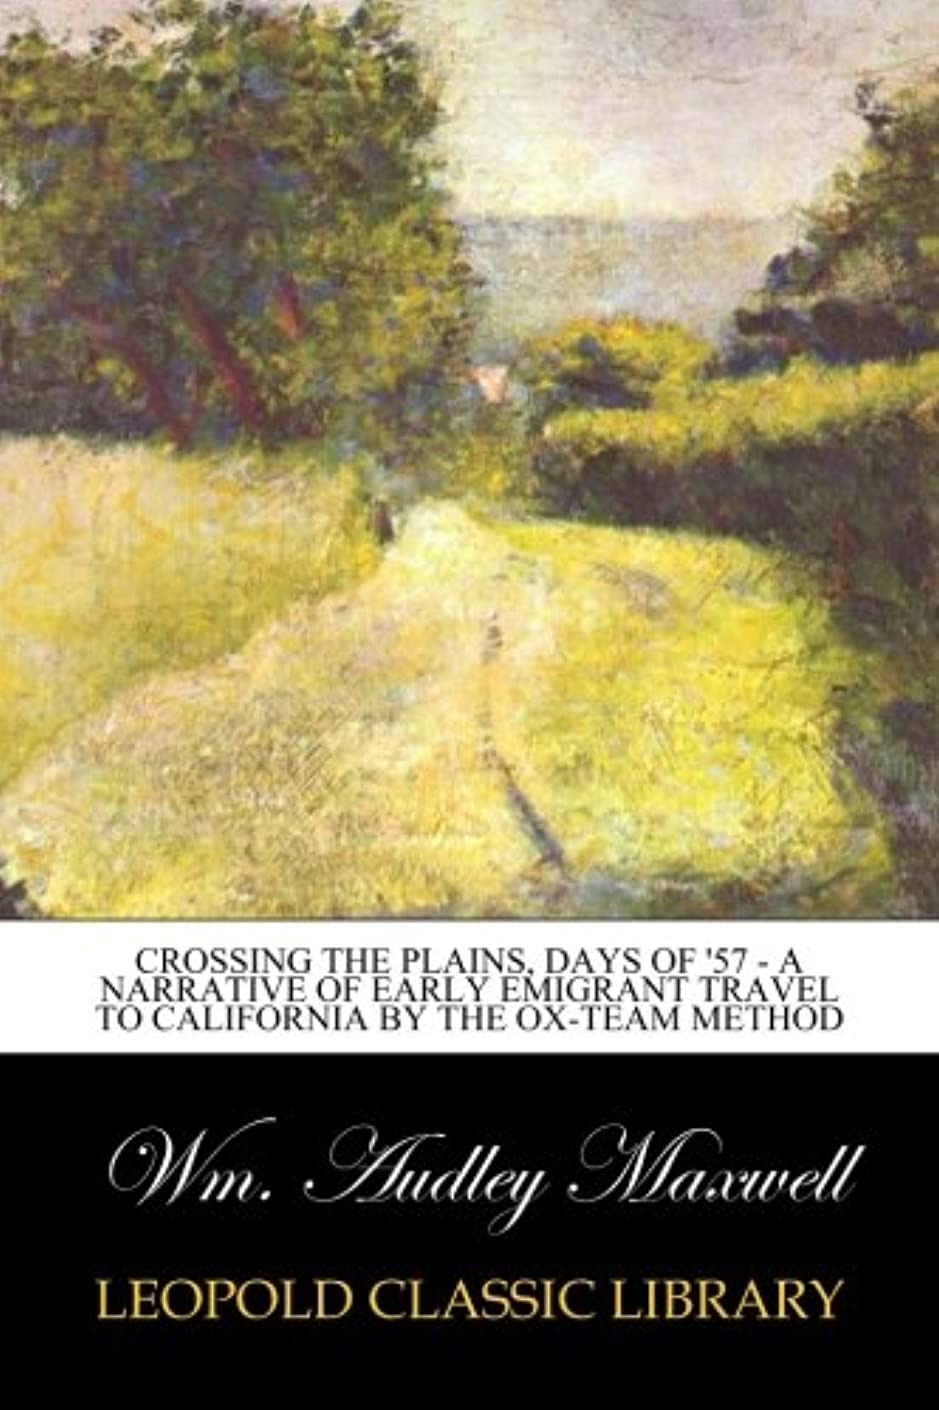 ぎこちない説明道徳のCrossing the Plains, Days of '57 - A Narrative of Early Emigrant Travel to California by the Ox-team Method